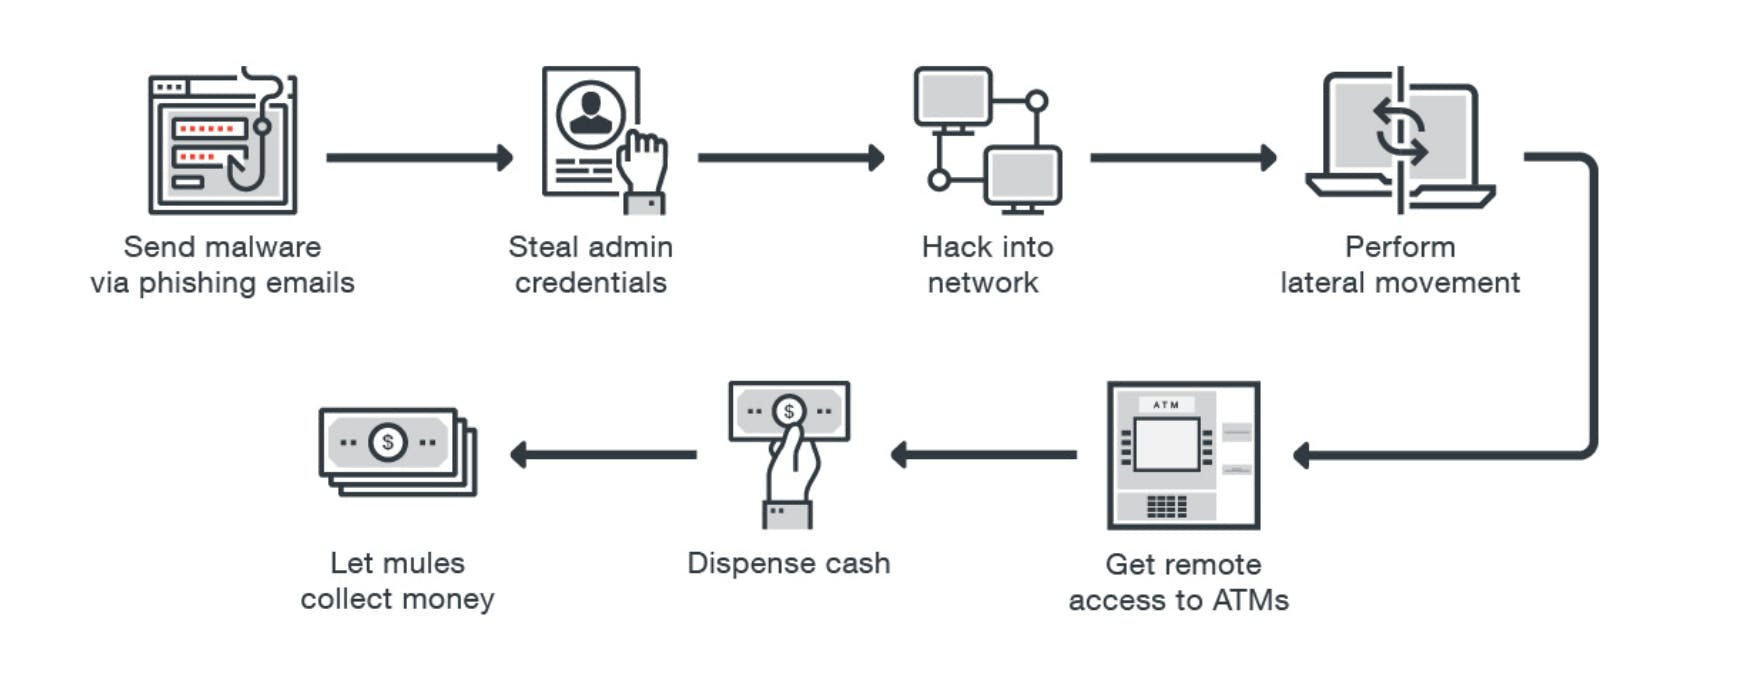 atm network-based attacks steps for hackers